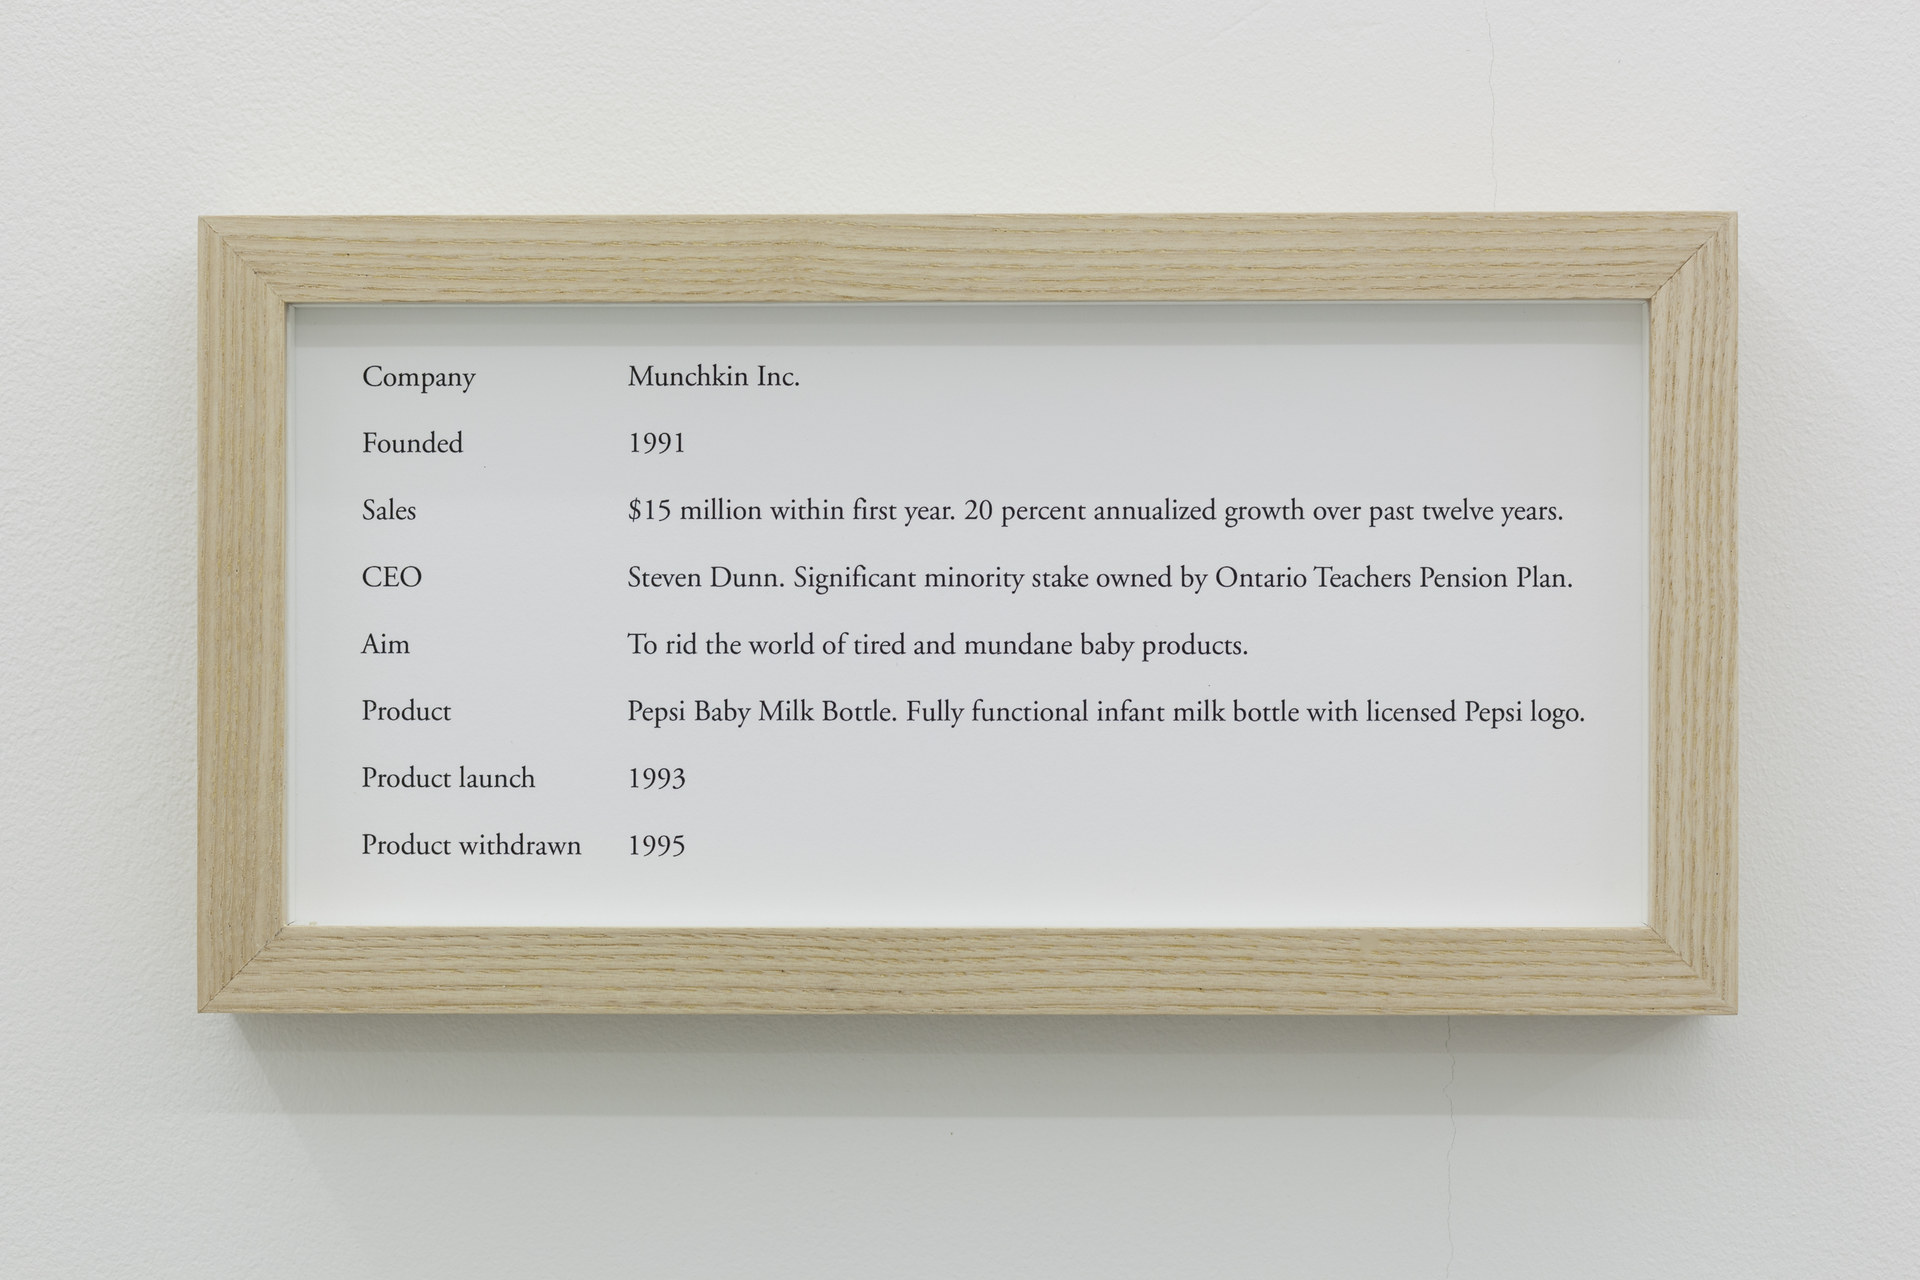 Maryam Jafri, ÔÇÿProduct Recall - An Index of InnovationÔÇÖ, 2014, framed texts, photographs, plinths, objects, installation dimensions variable - 3